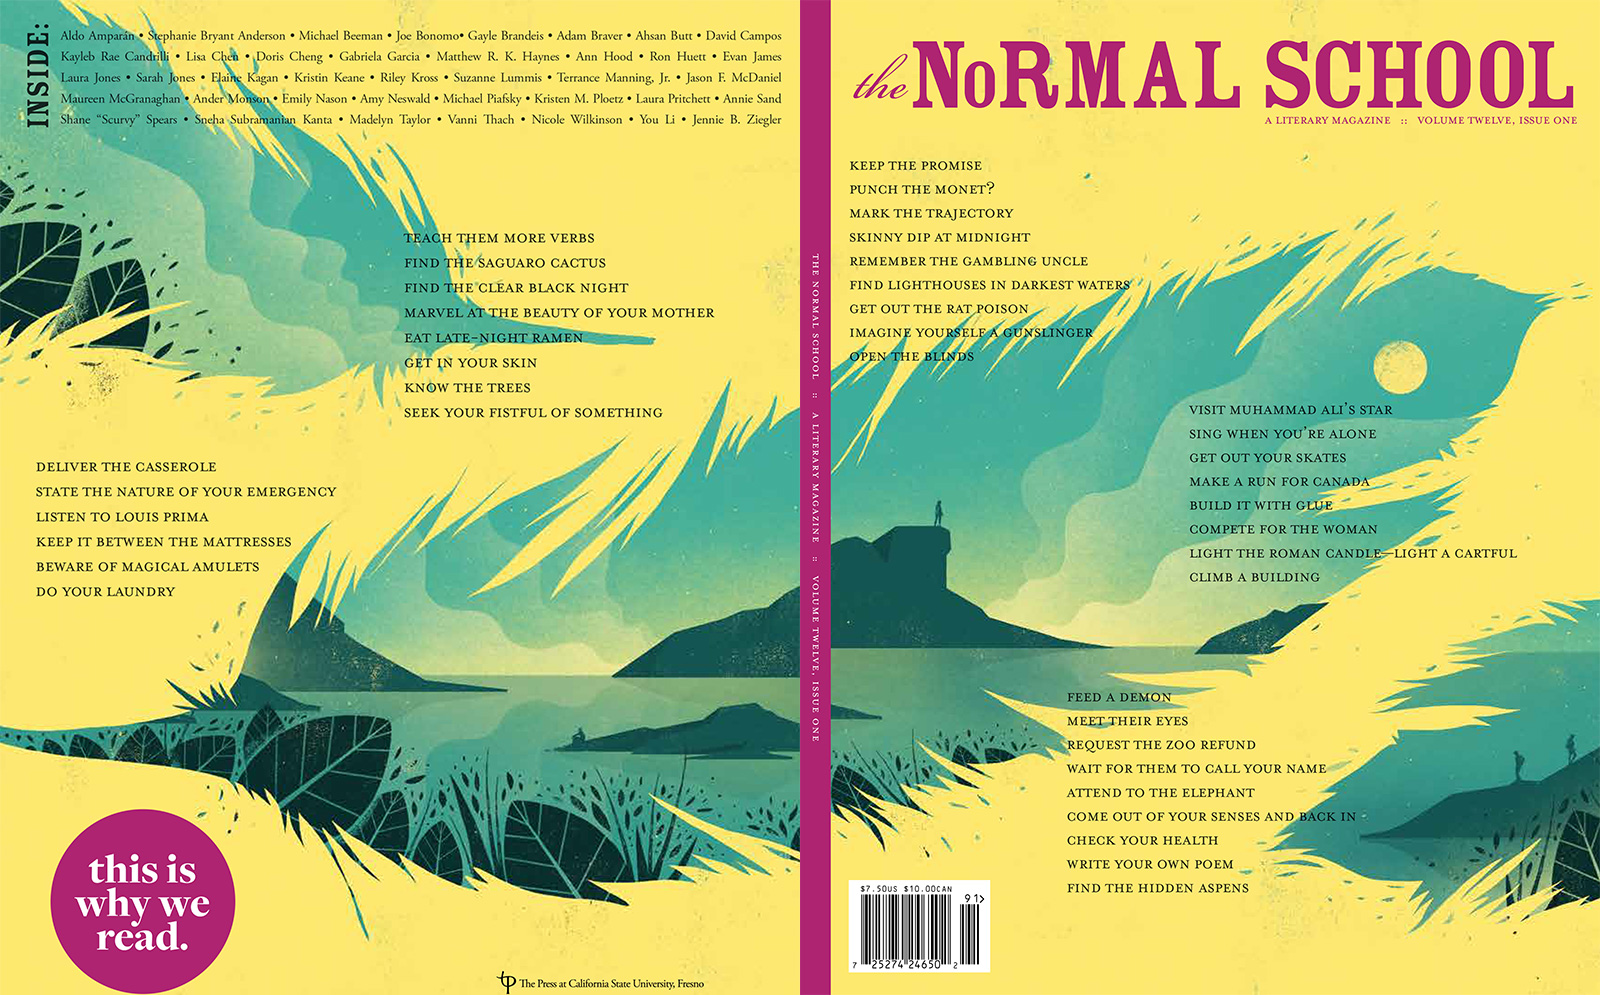 Back and front cover of the final Normal School Magazine print edition